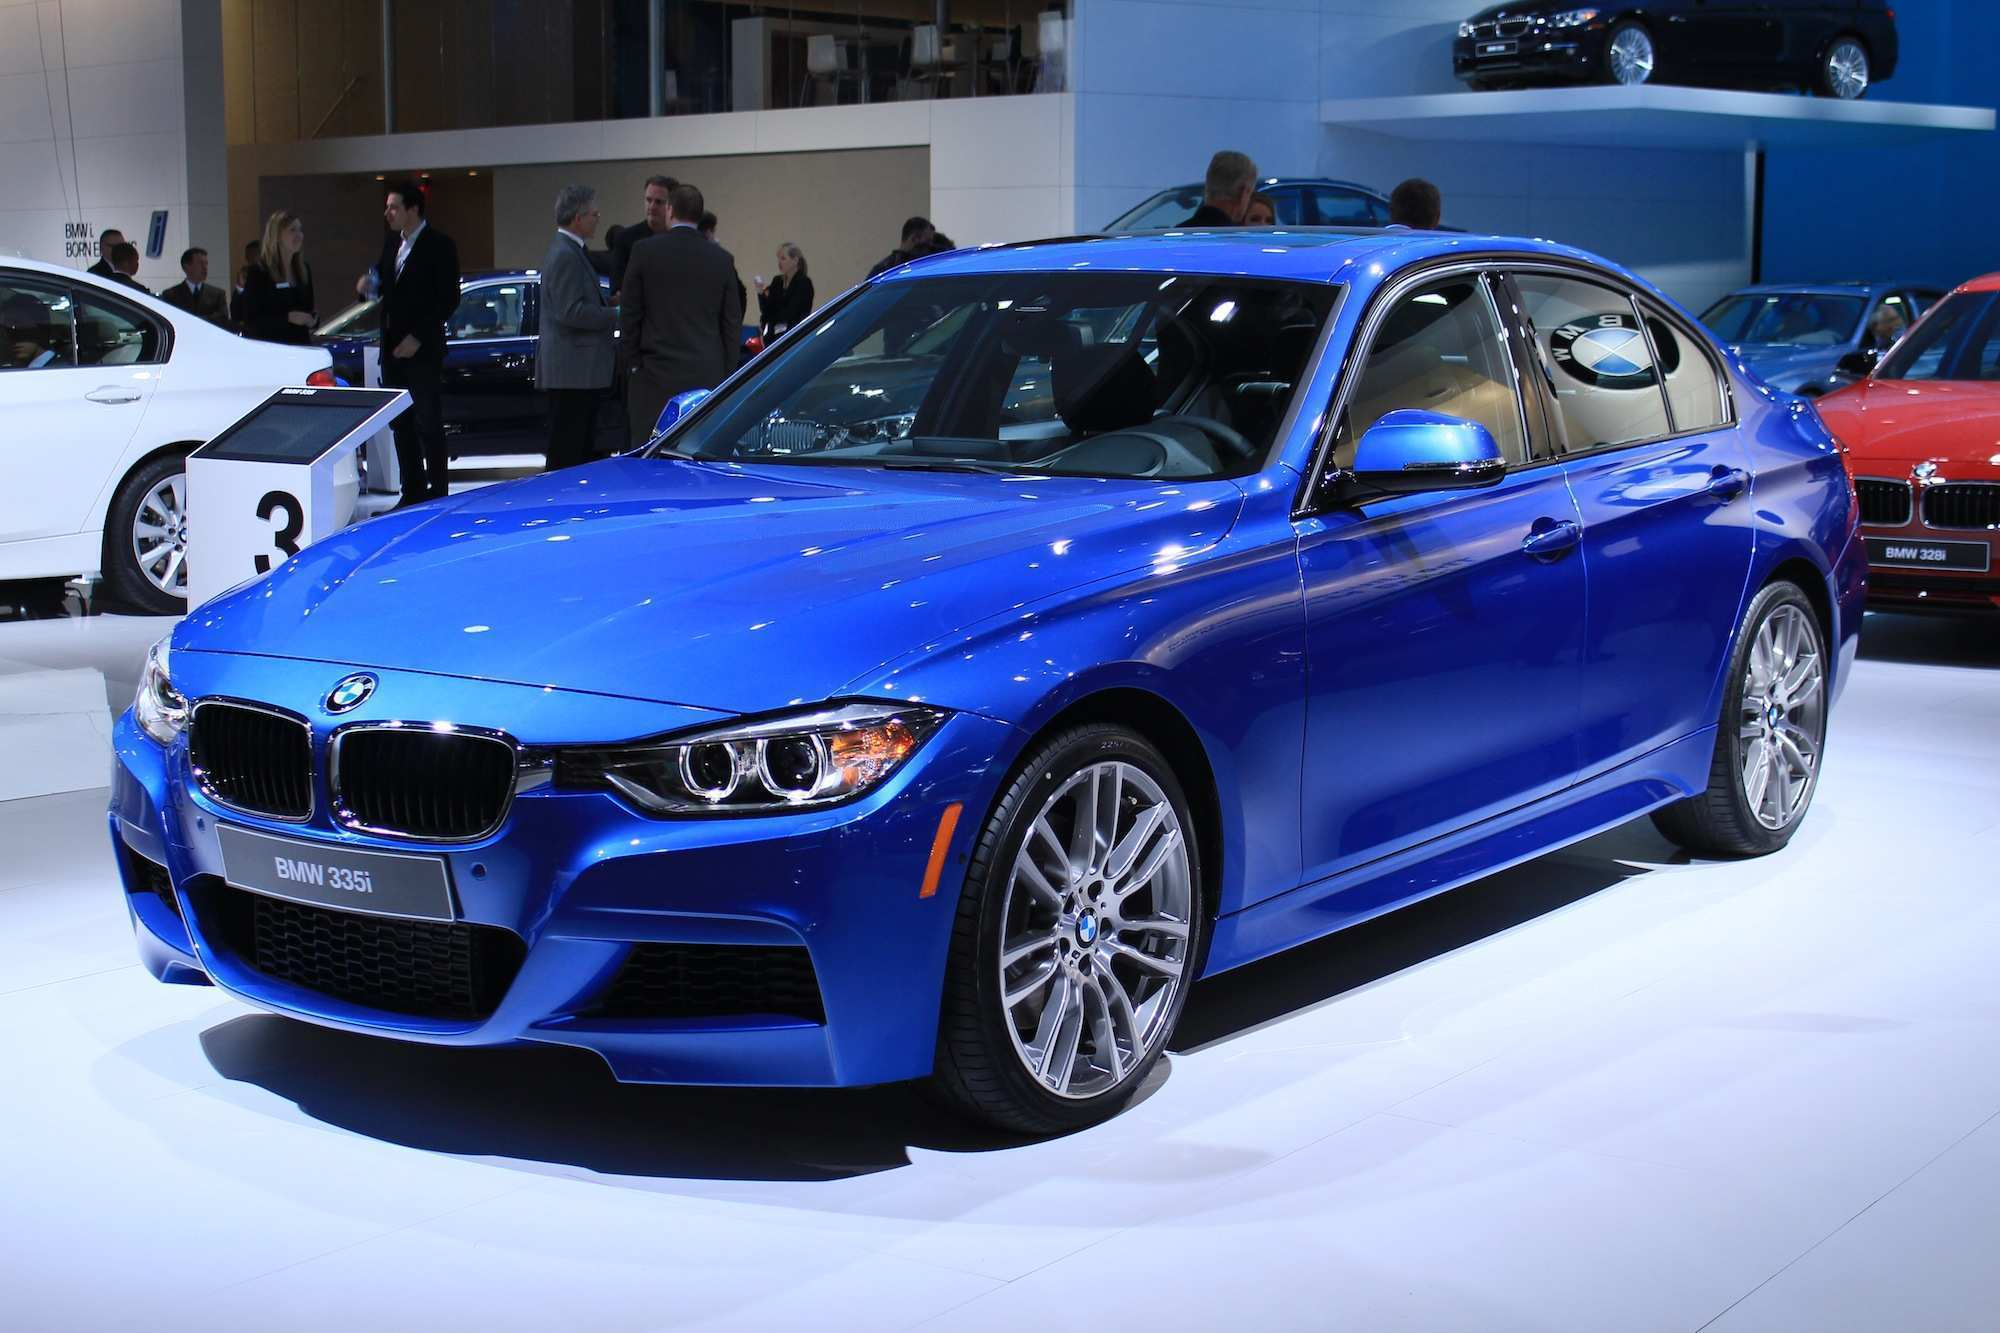 60 Best 2020 BMW 335i Engine